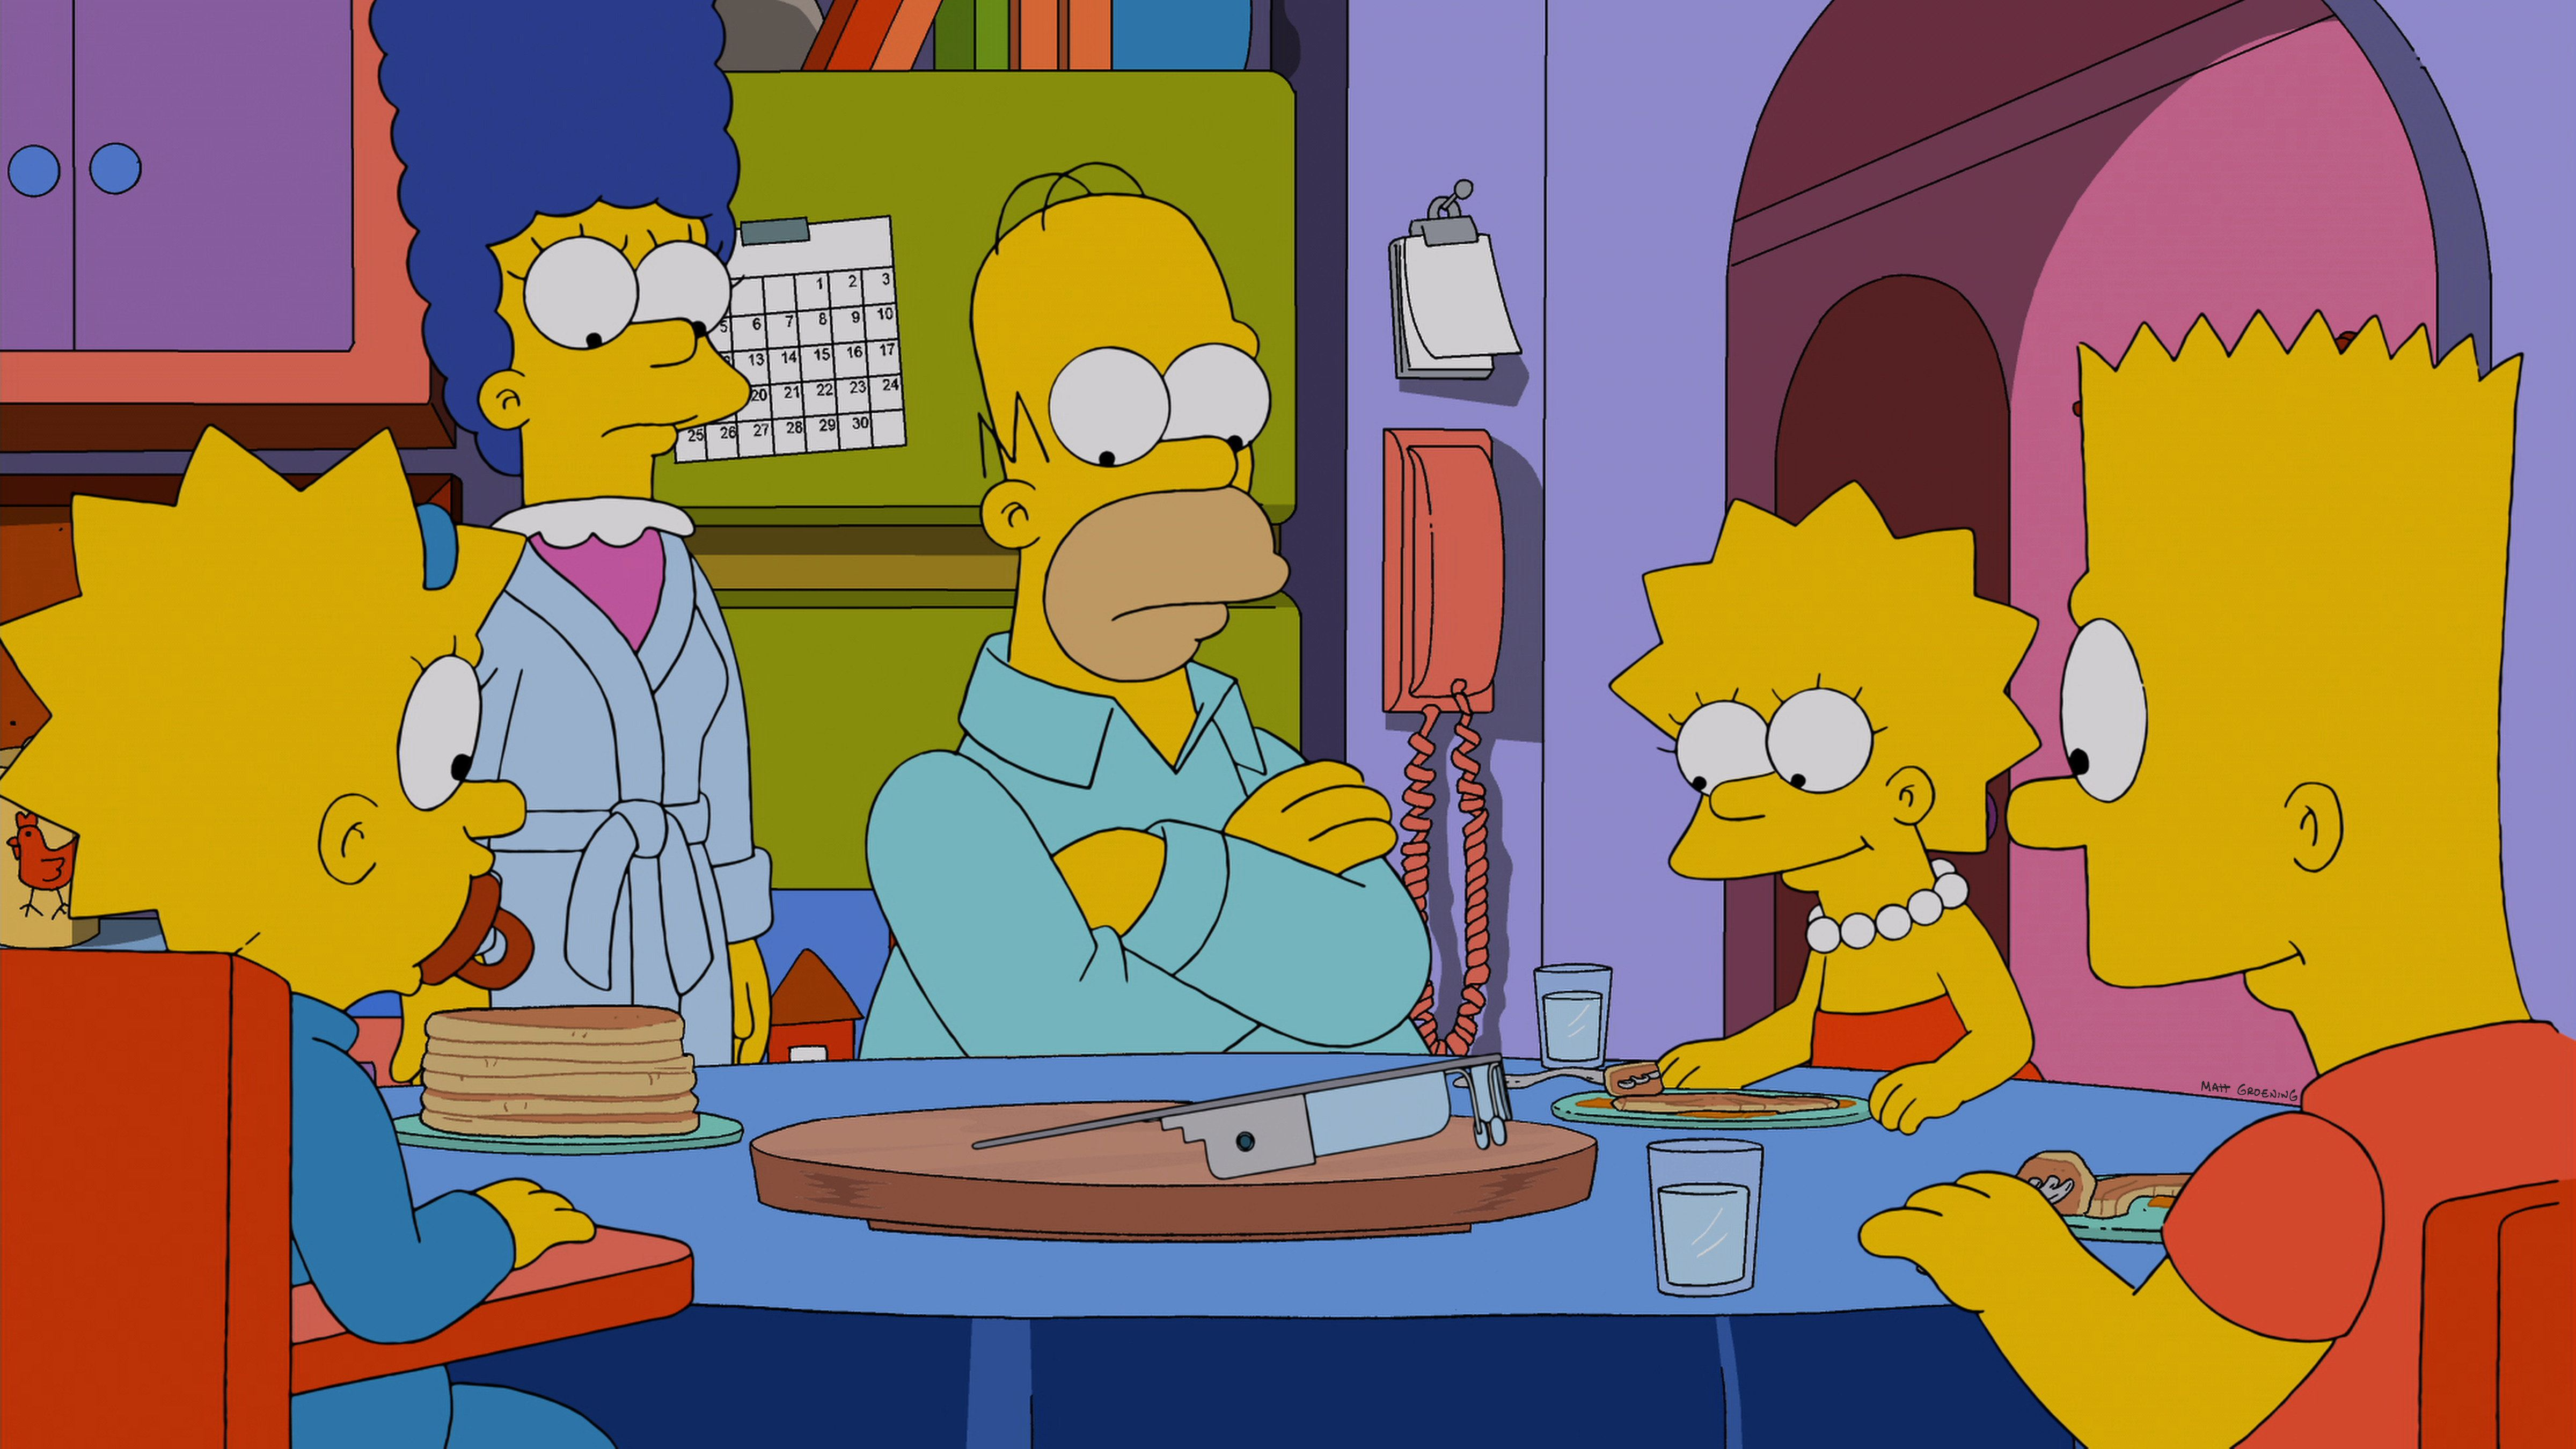 THE SIMPSONS: The Simpson family is excited to try out Homer's new toy in the 'Specs and the City' episode of THE SIMPSONS airing Sunday, Jan. 26, 2014 (8:00-8:30 PM ET/PT) on FOX. (Photo by FOX via Getty Images)